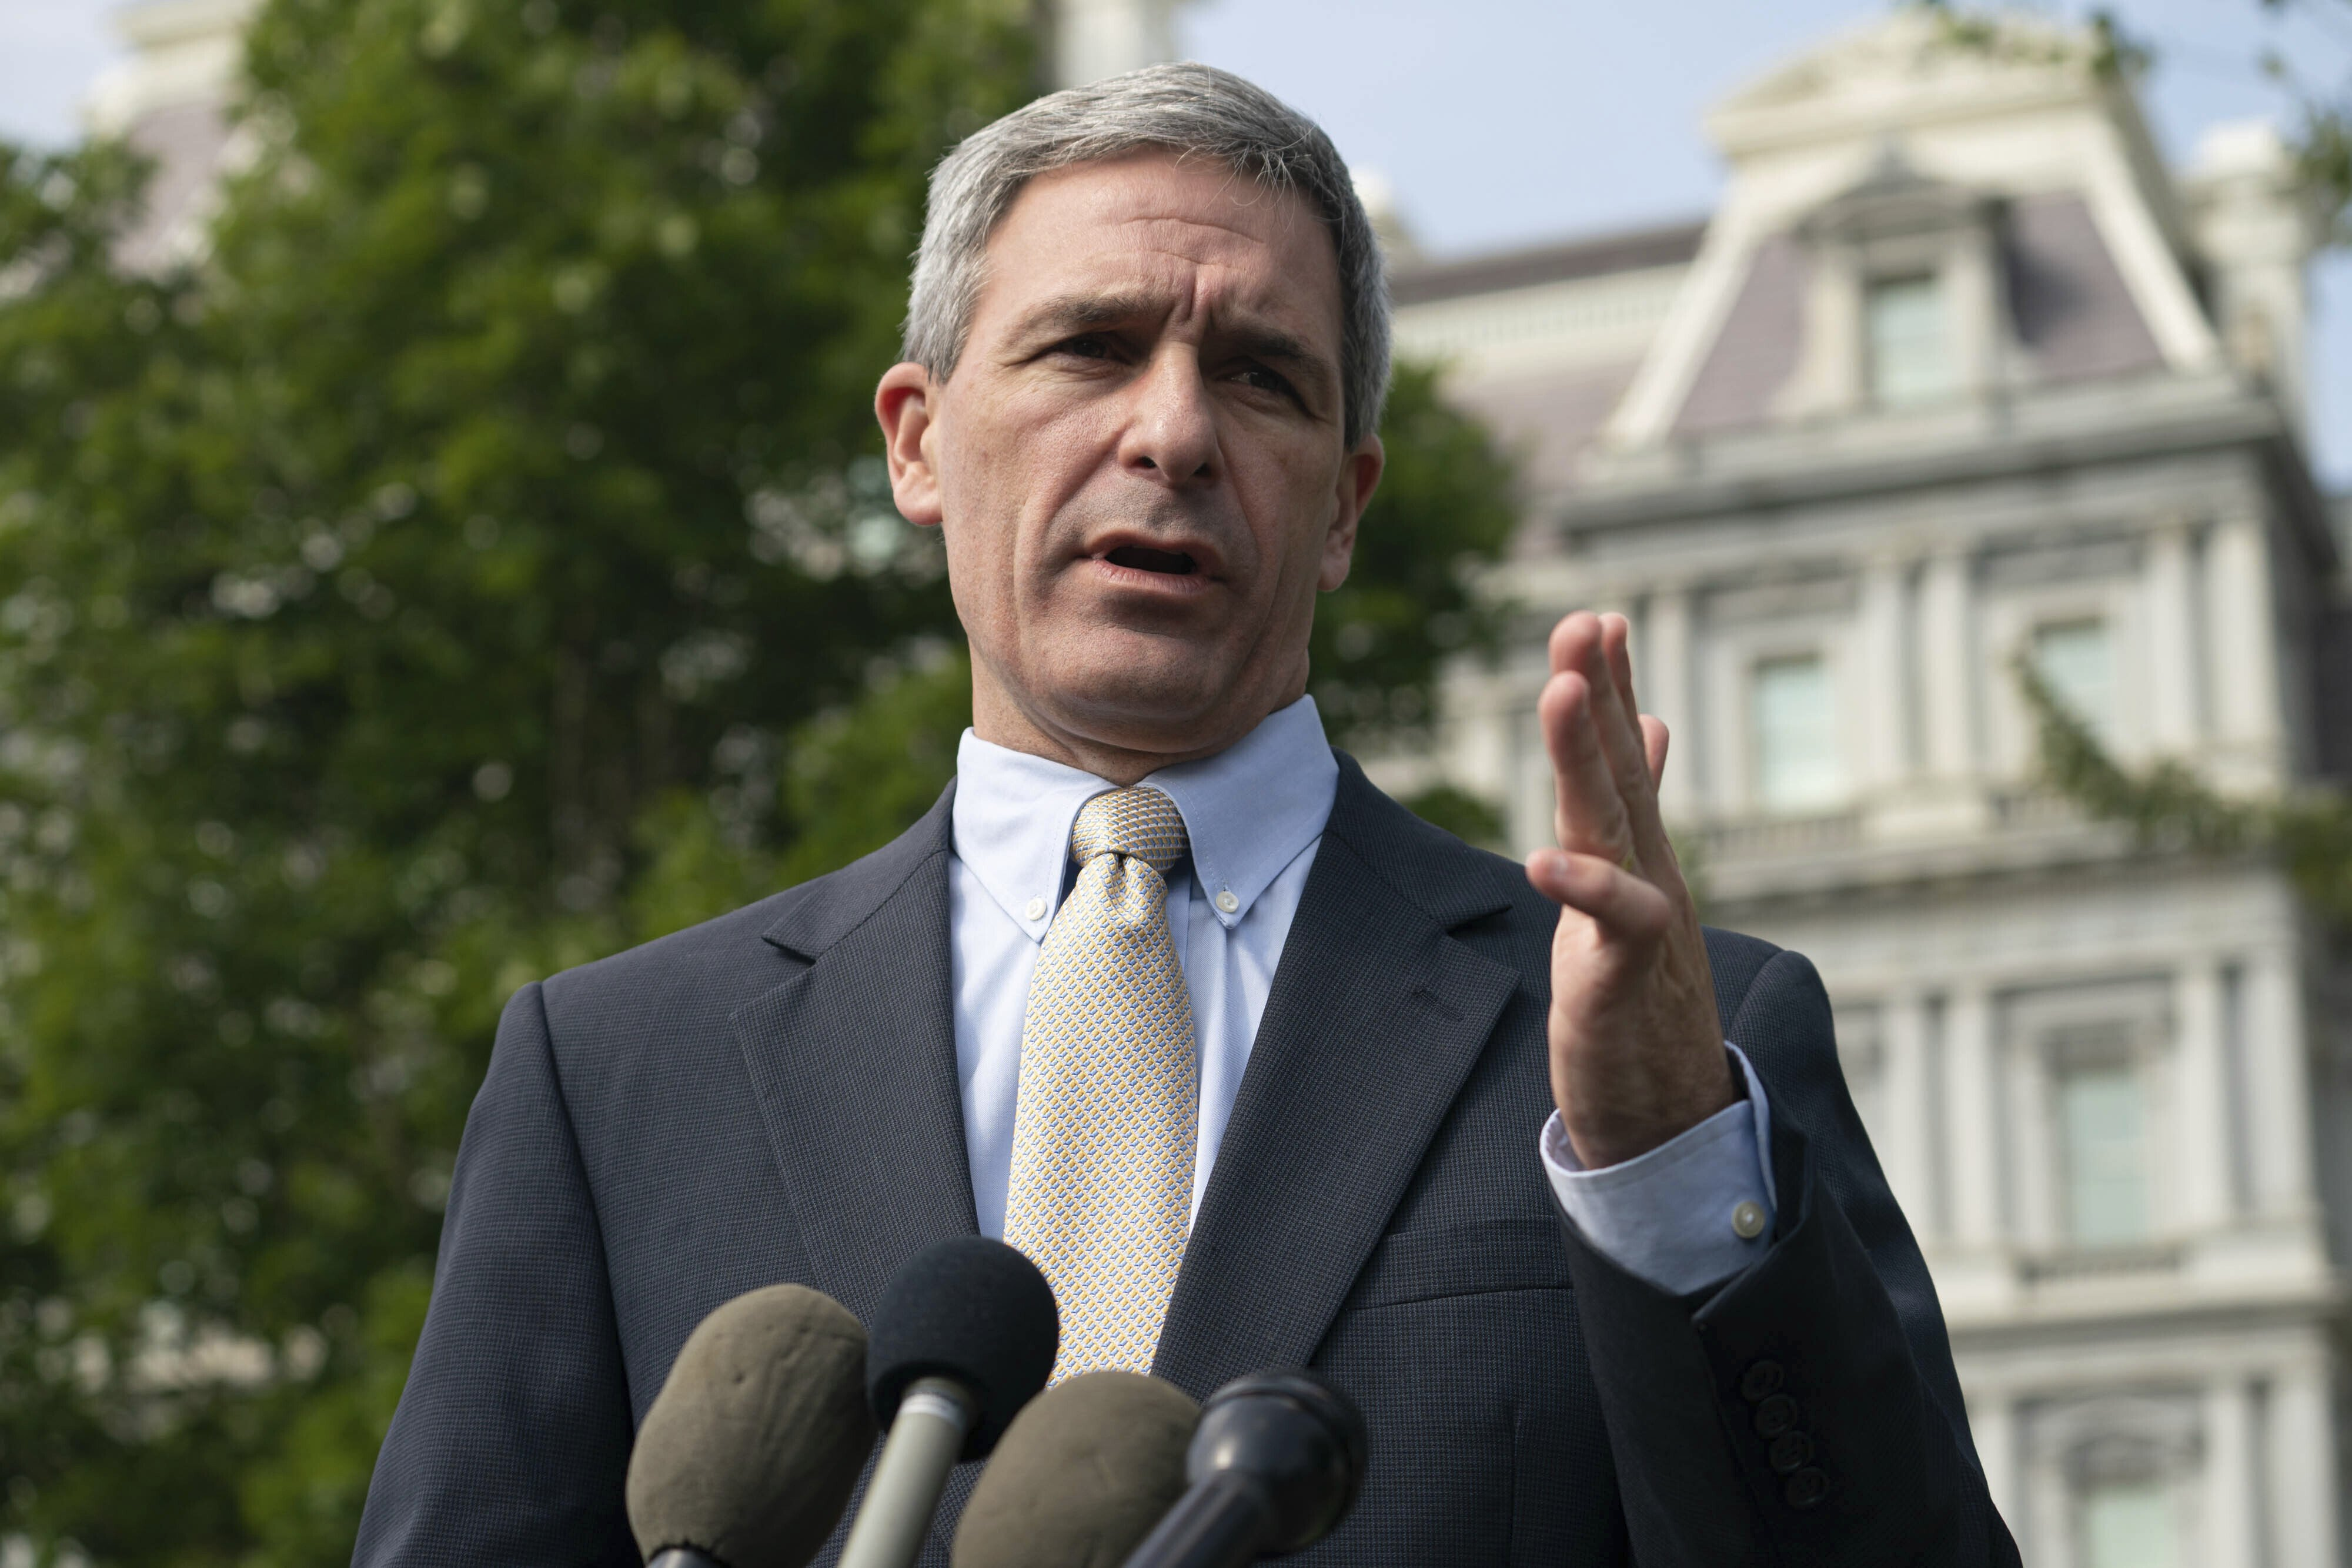 Ken Cuccinelli's rise at the Department of Homeland Security